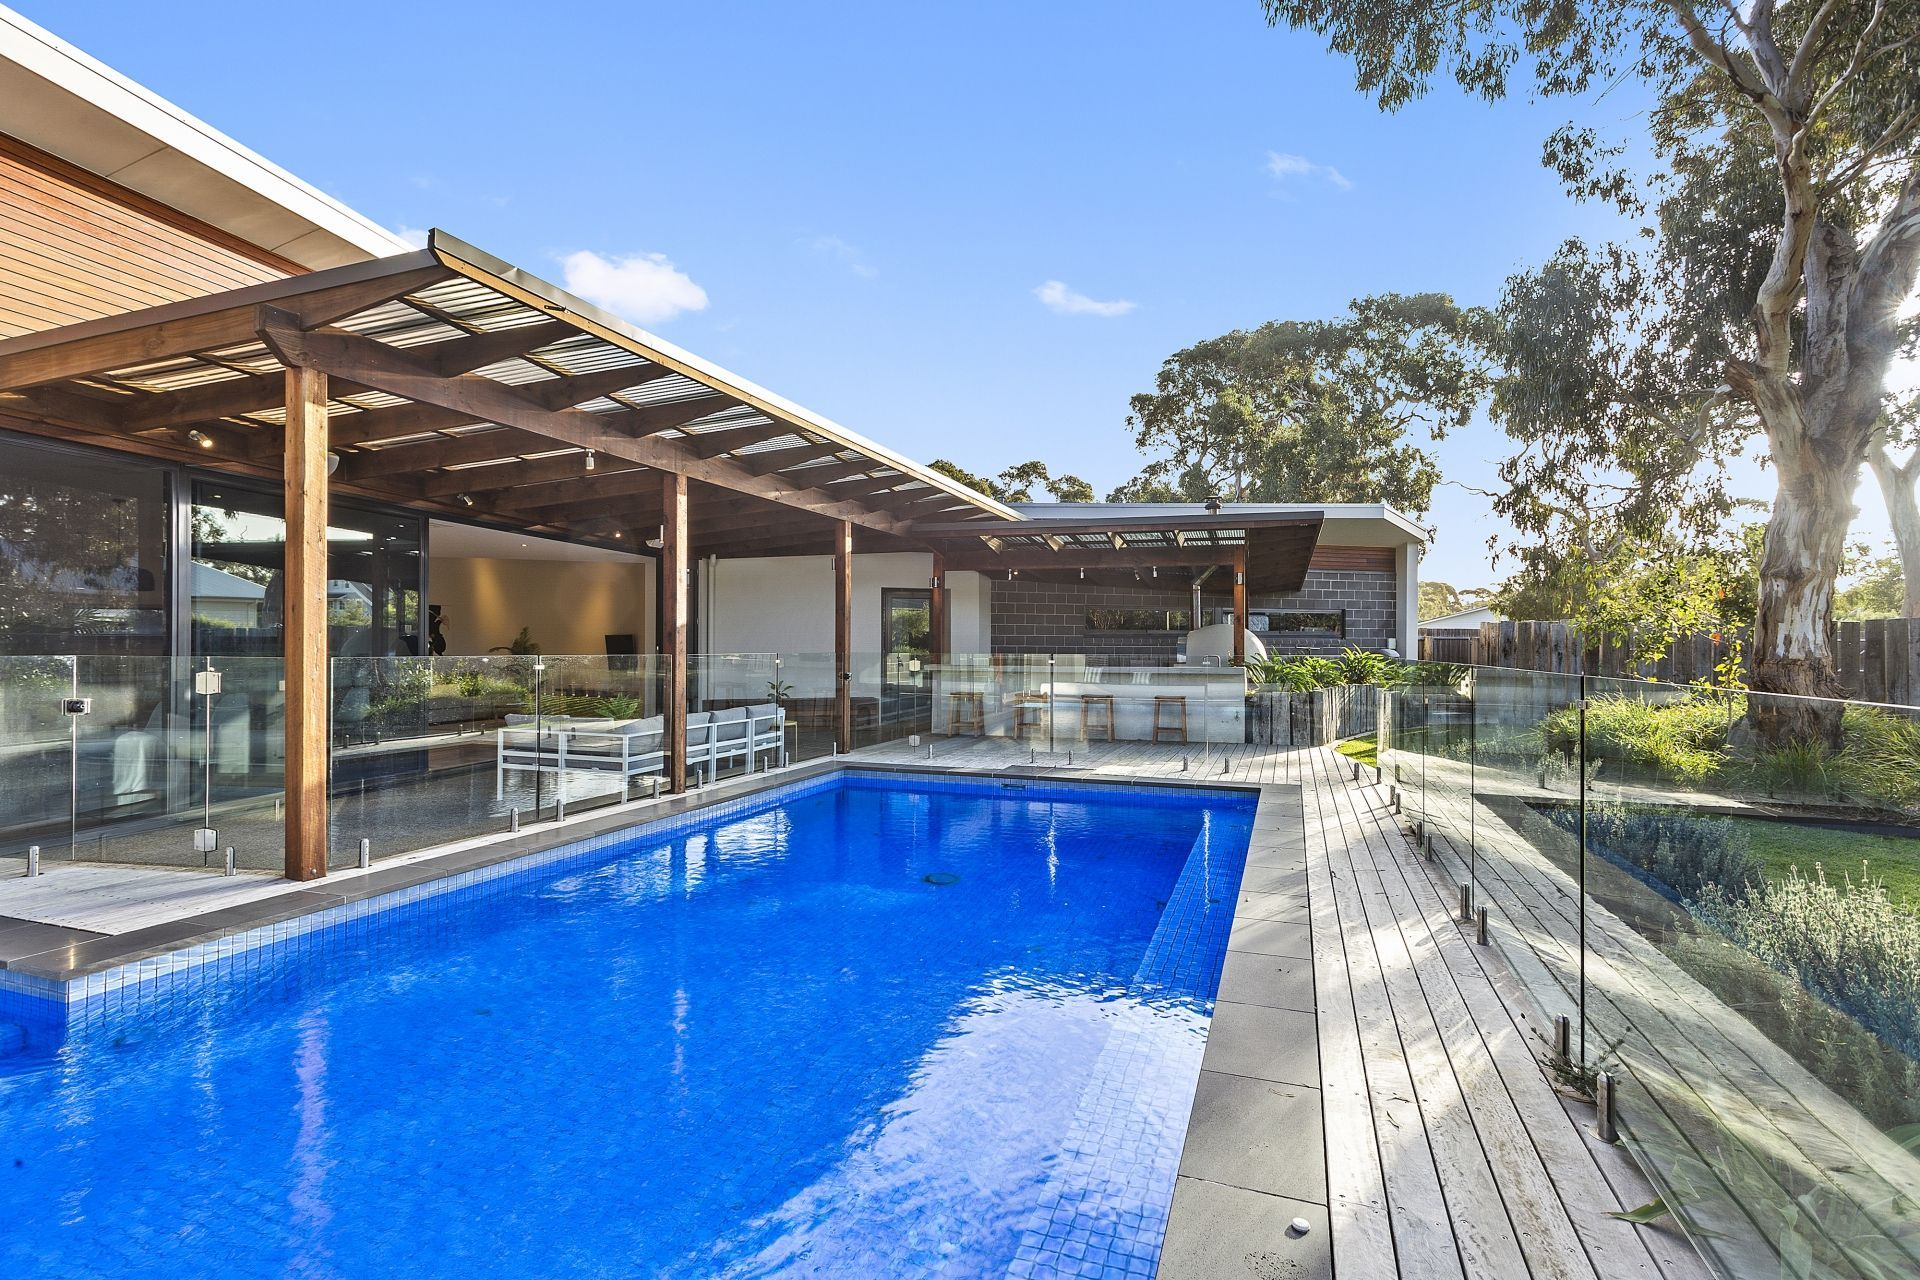 Sold property: Undisclosed for 24-26 Yellow Gum Drive